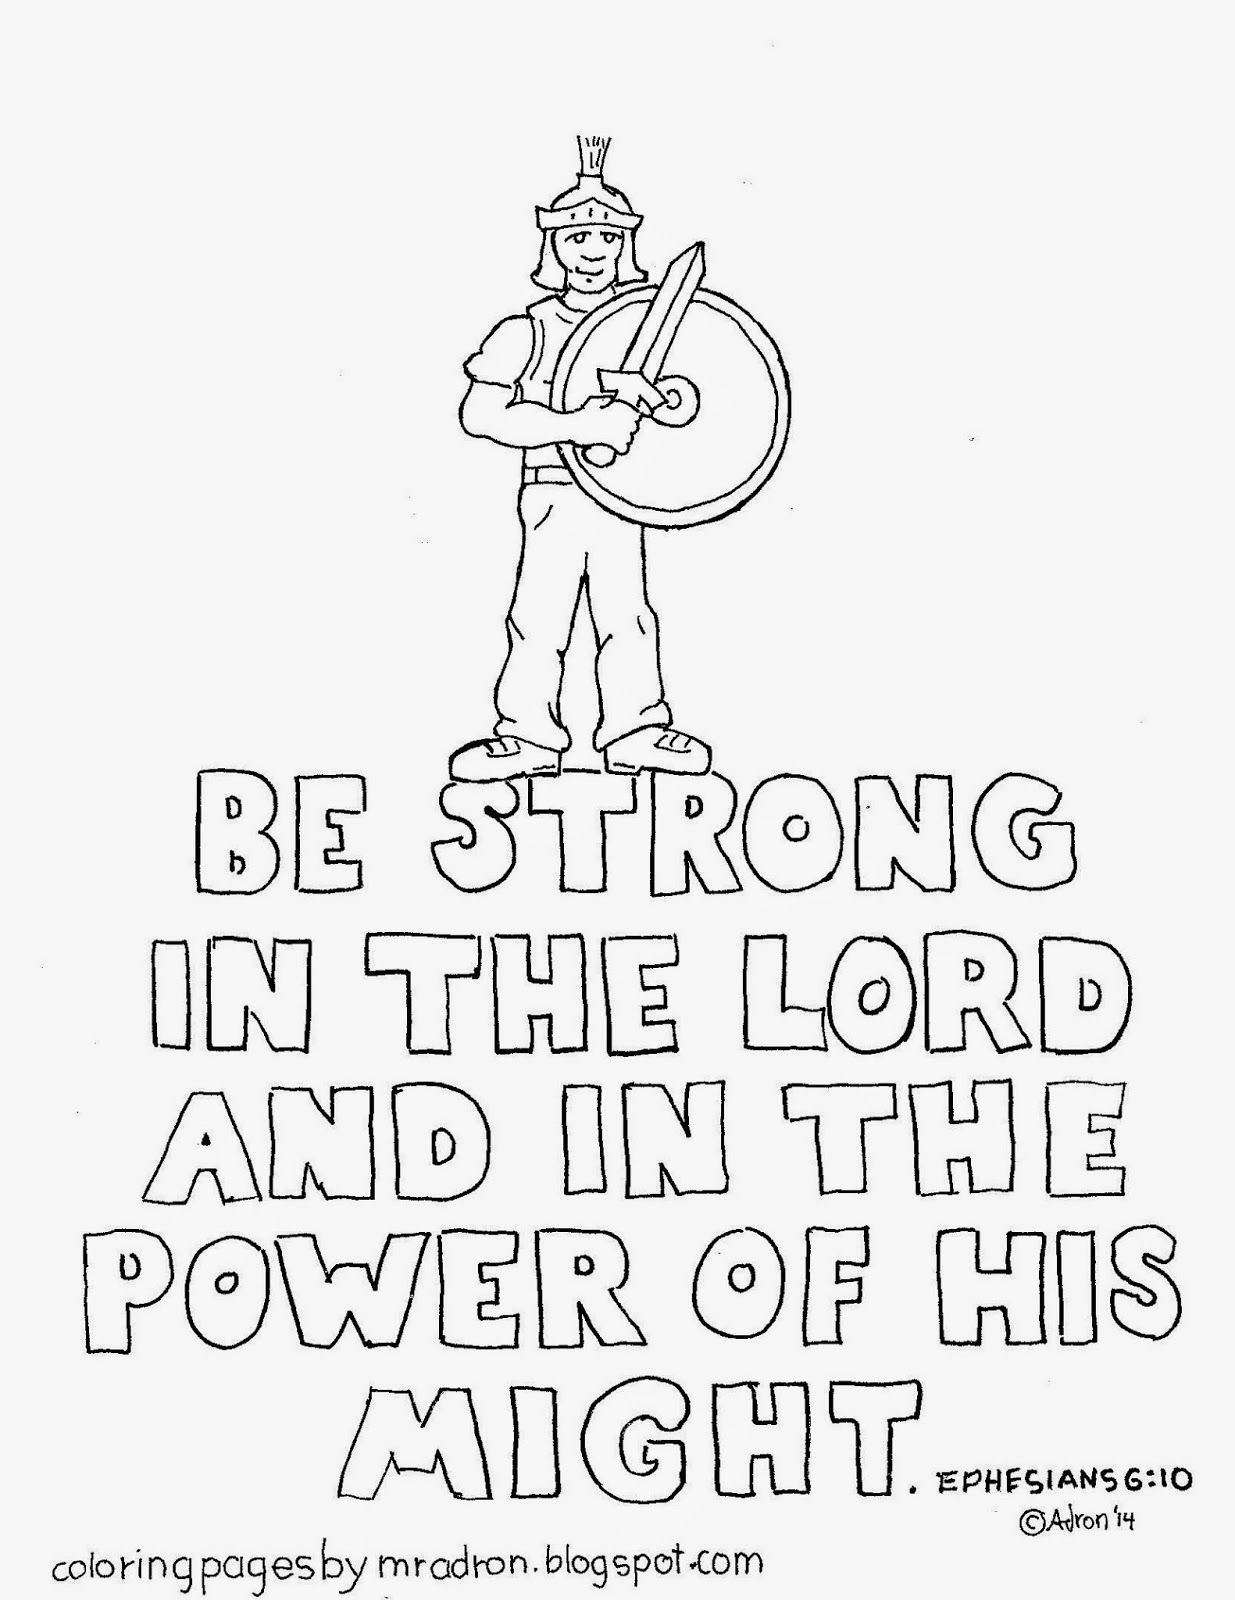 Coloring pages for preschoolers on salavation - Coloring Pages For Kids By Mr Adron Ephesians 6 10 Be Strong